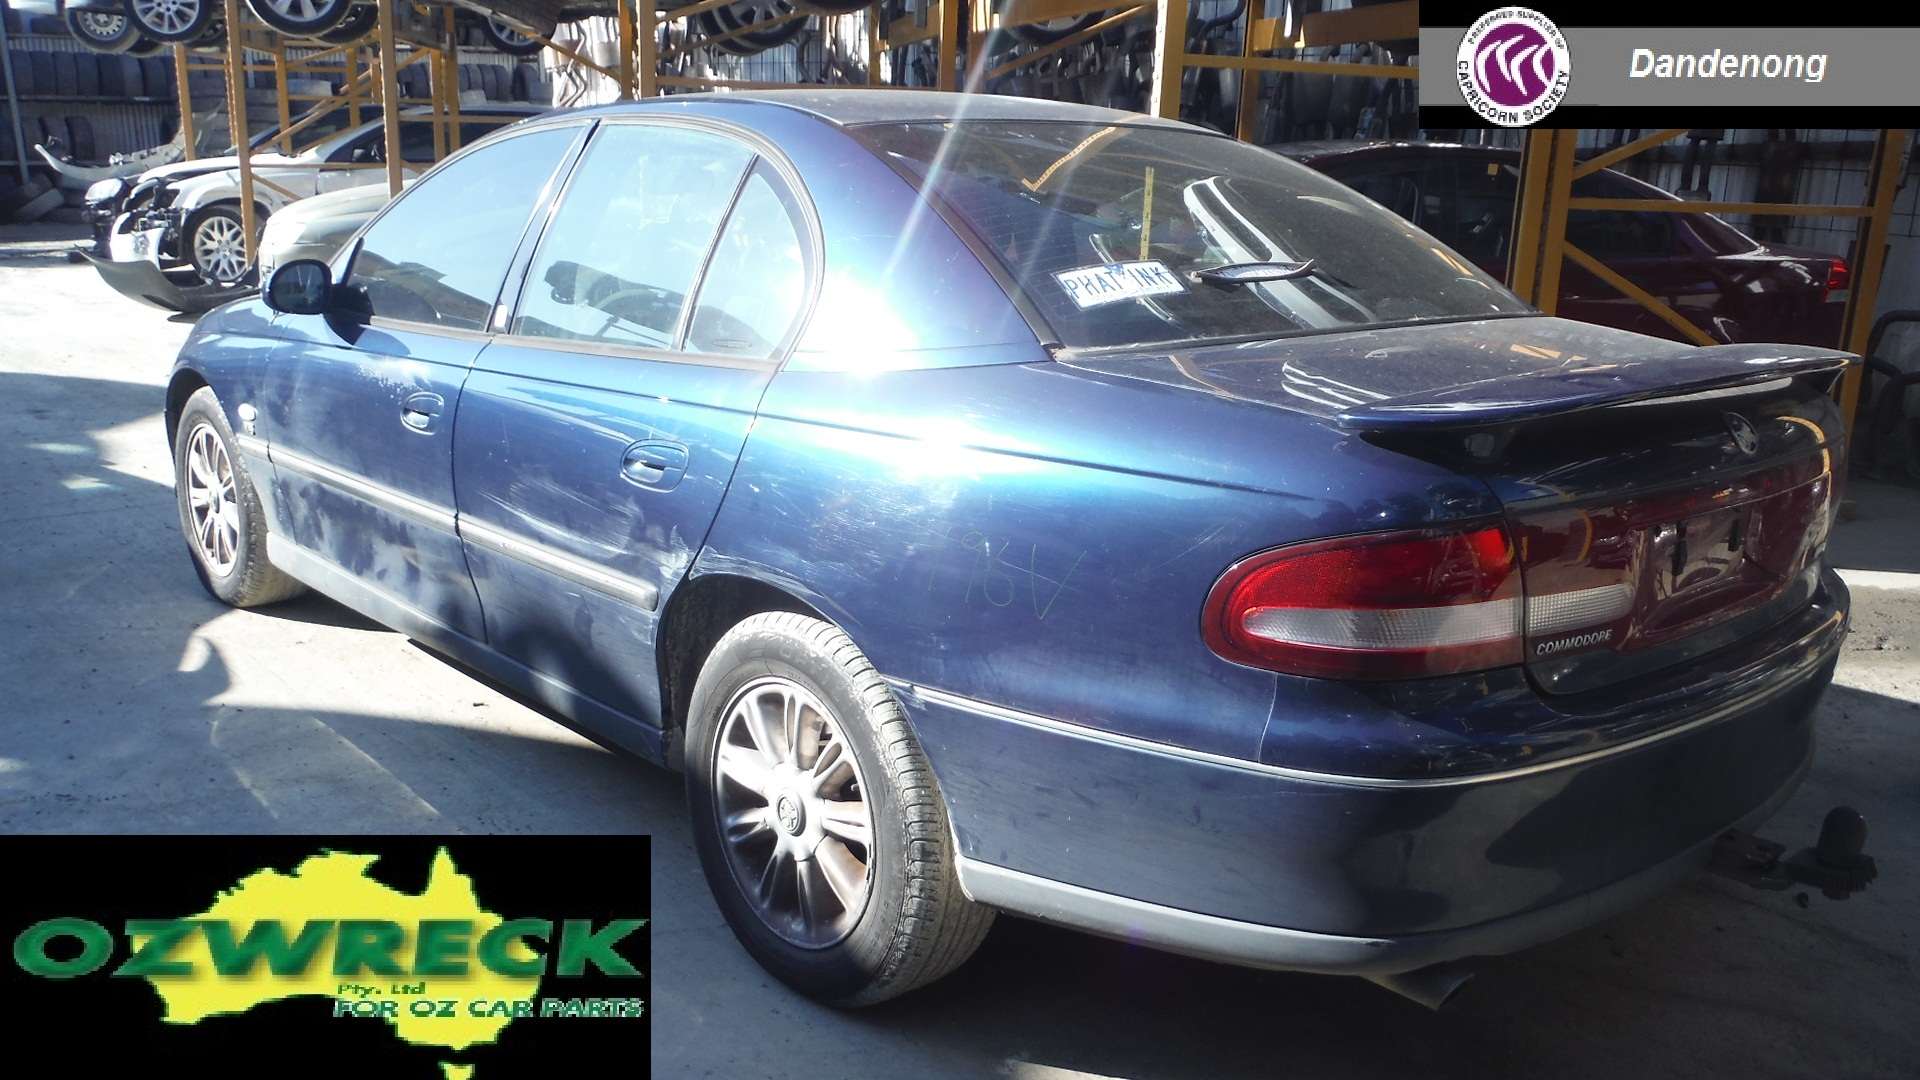 2000 HOLDEN COMMODORE VT II OLYMPIC EDITION